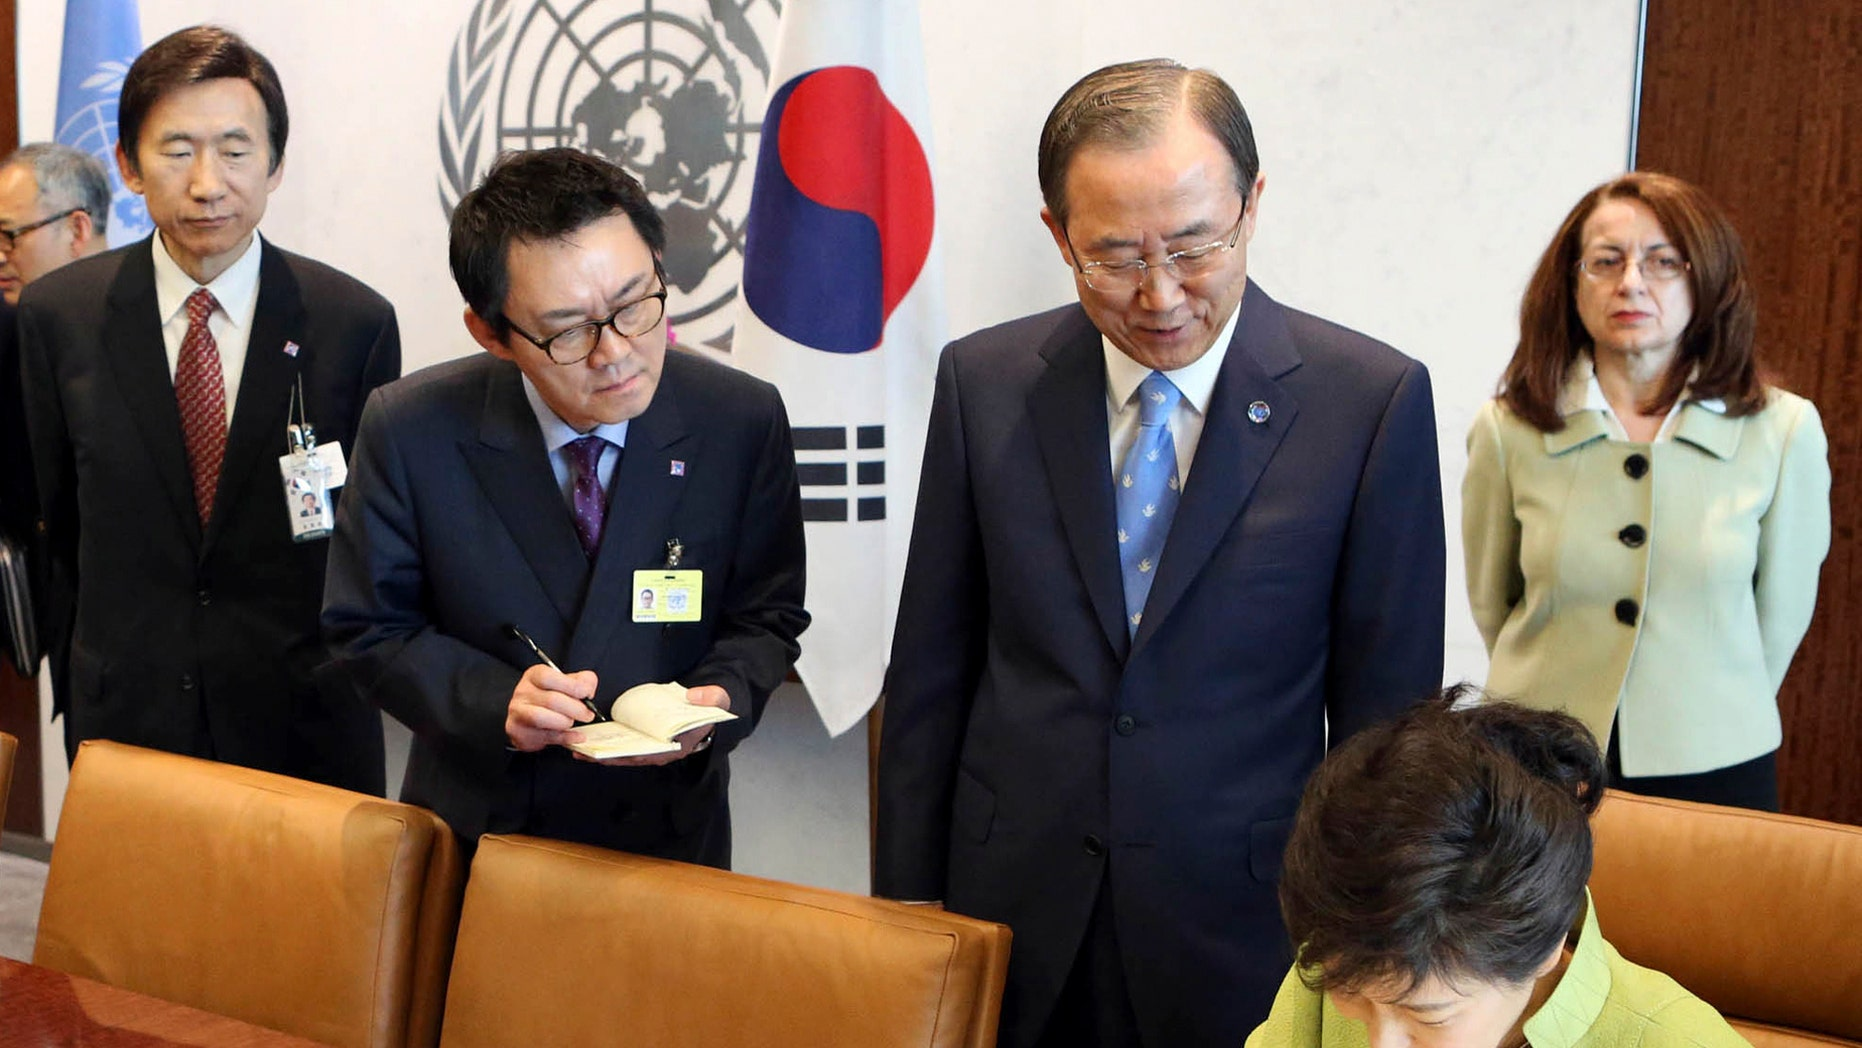 May 6, 2013: In this photo, South Korean President's spokesman Yoon Chang-jung, third right top, watches South Korean President Park Geun-hye, right bottom, sign the guestbook as UN Secretary General Ban Ki-moon, second right, looks on, at United Nations headquarters.